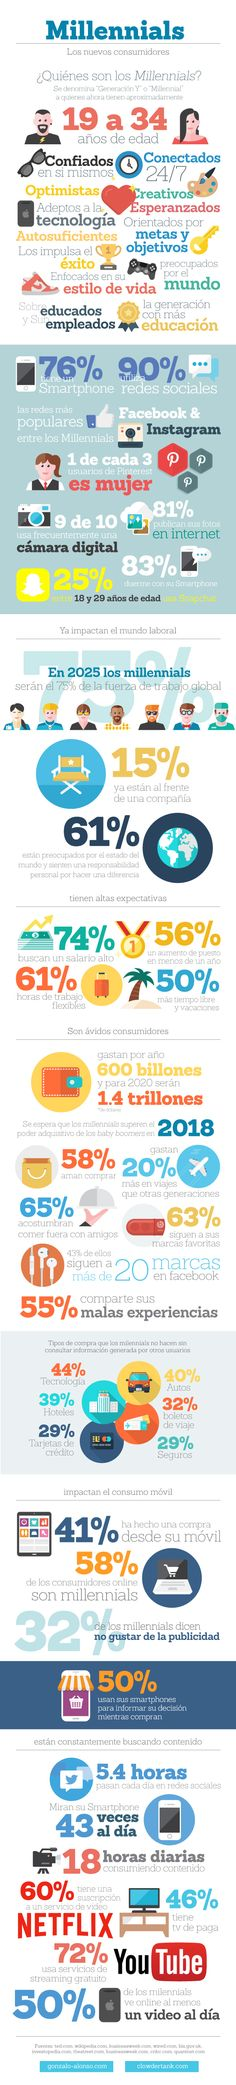 #Millenials: los nuevos consumidores #infografia #infographic #marketing